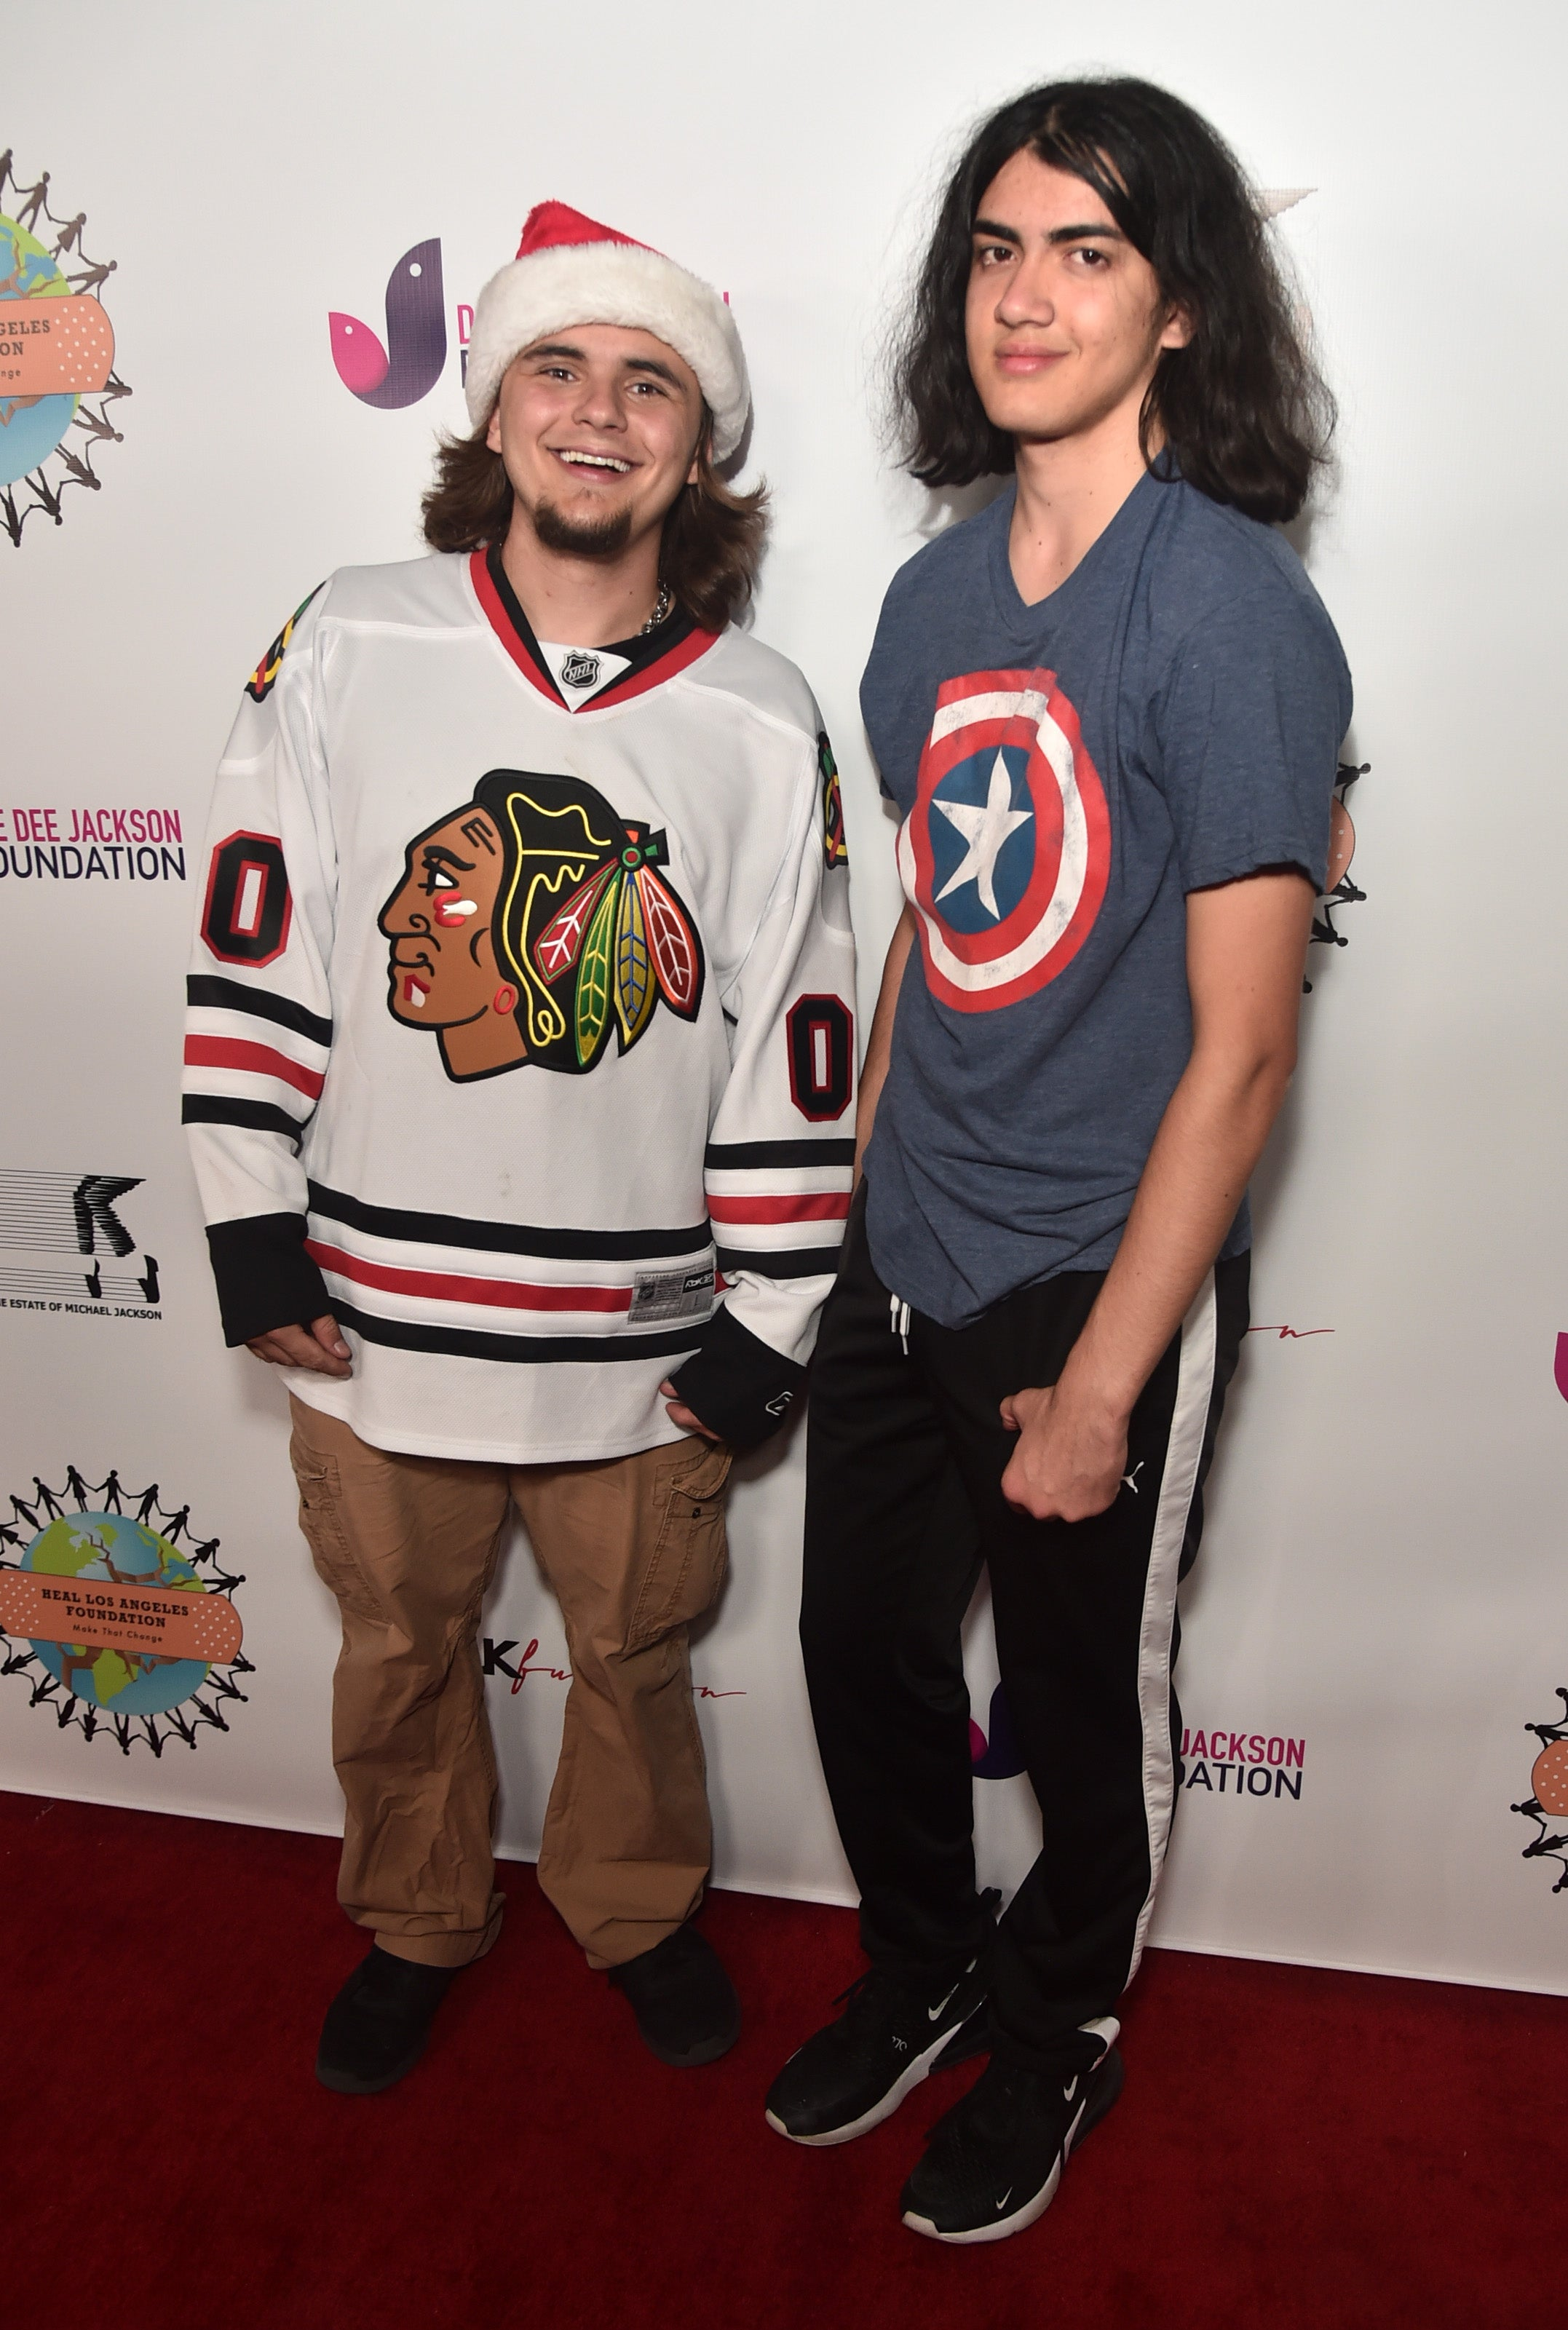 Prince Jackson on Working With Brother Bigi & Following His ...